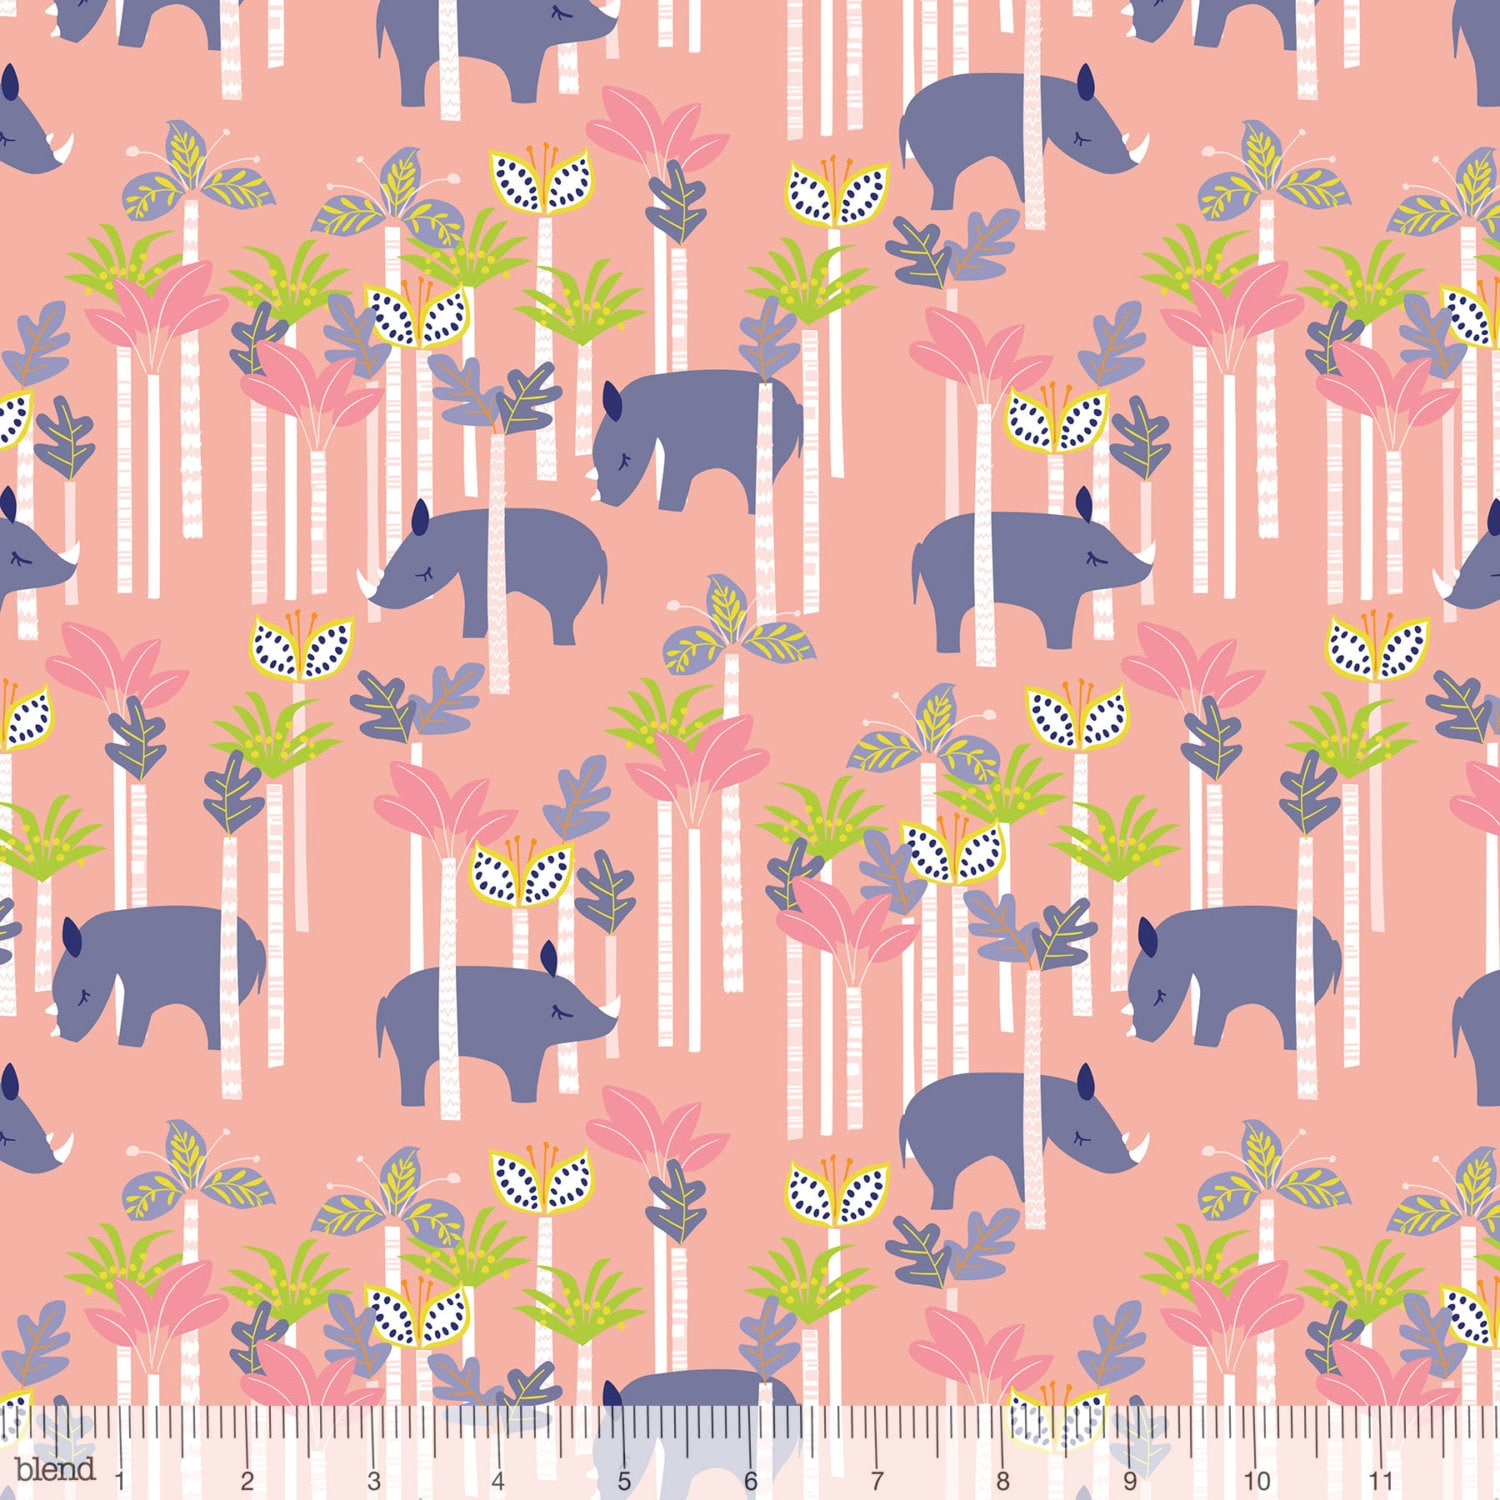 sundaland jungle rhinos in pink by katy tanis for blend fabrics from lilyrosequilts on etsy studio. Black Bedroom Furniture Sets. Home Design Ideas